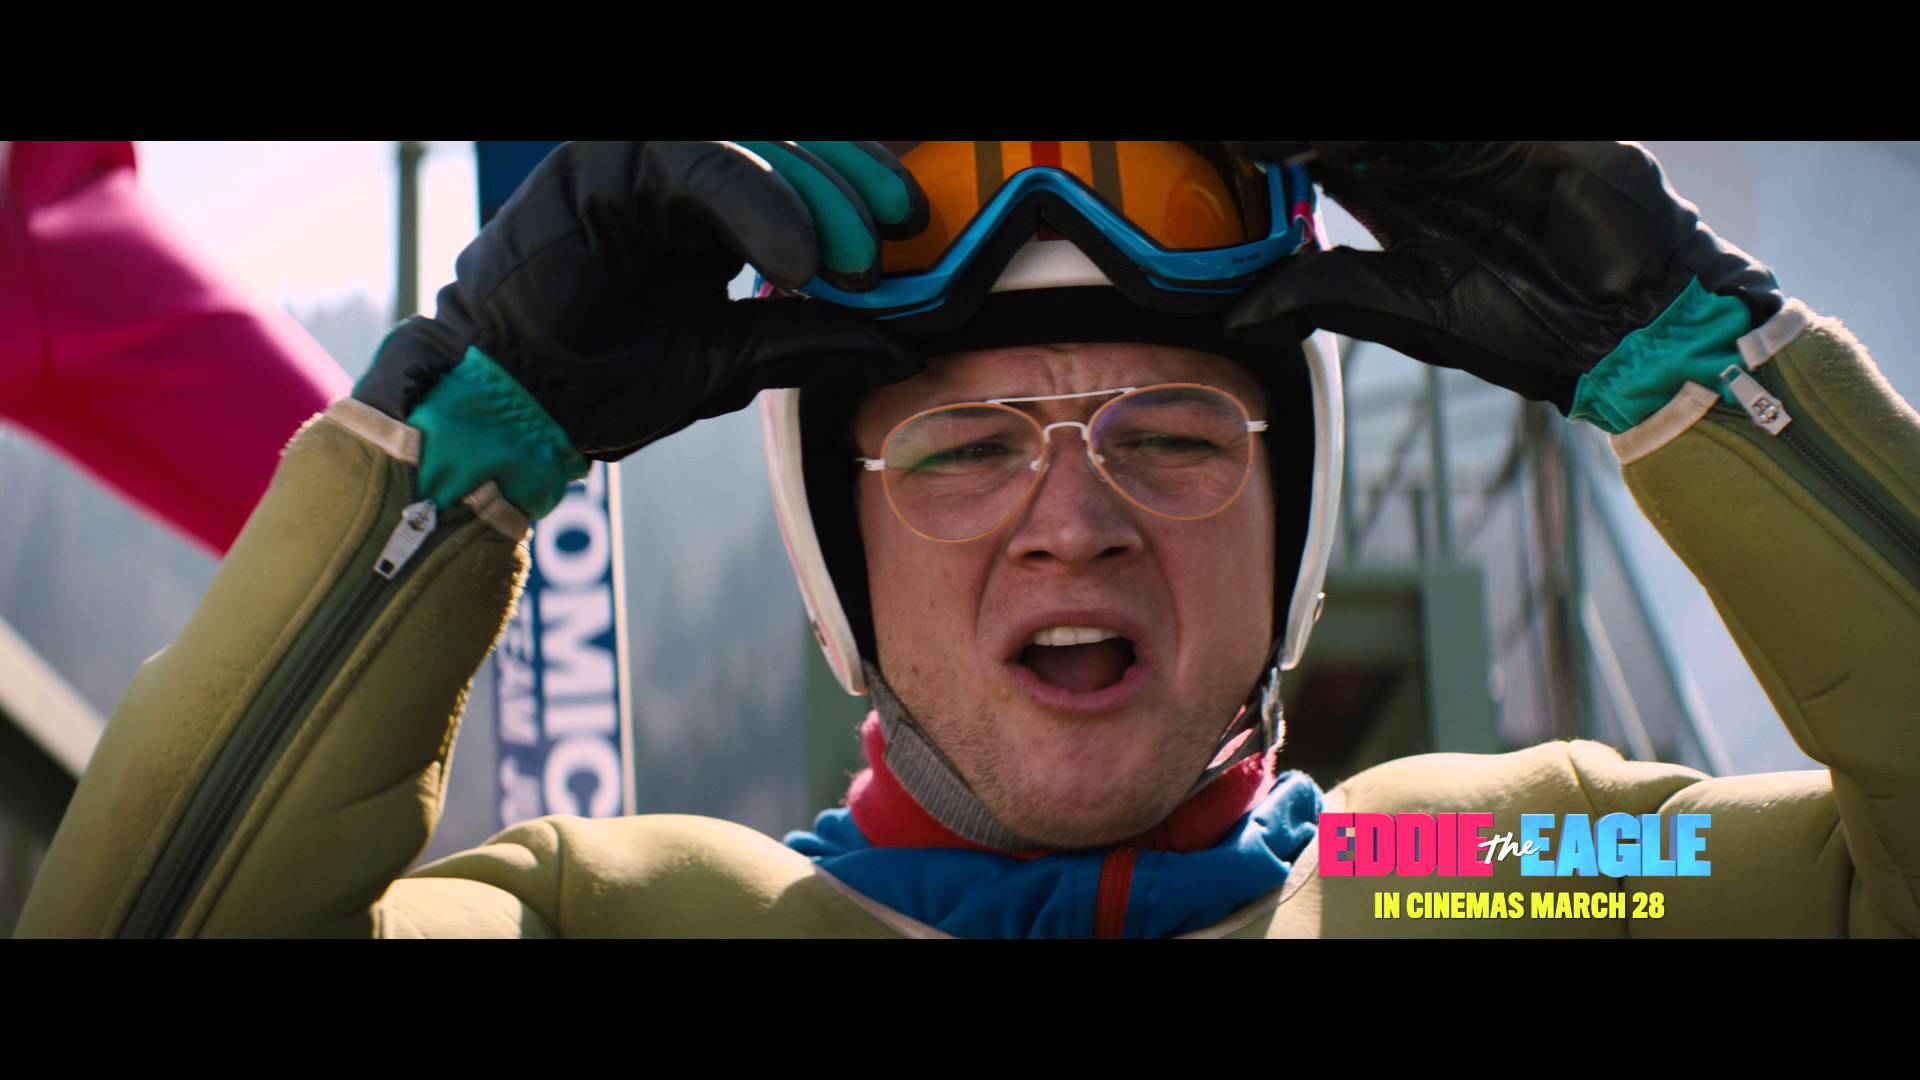 Eddie the Eagle – in cinemas March 28